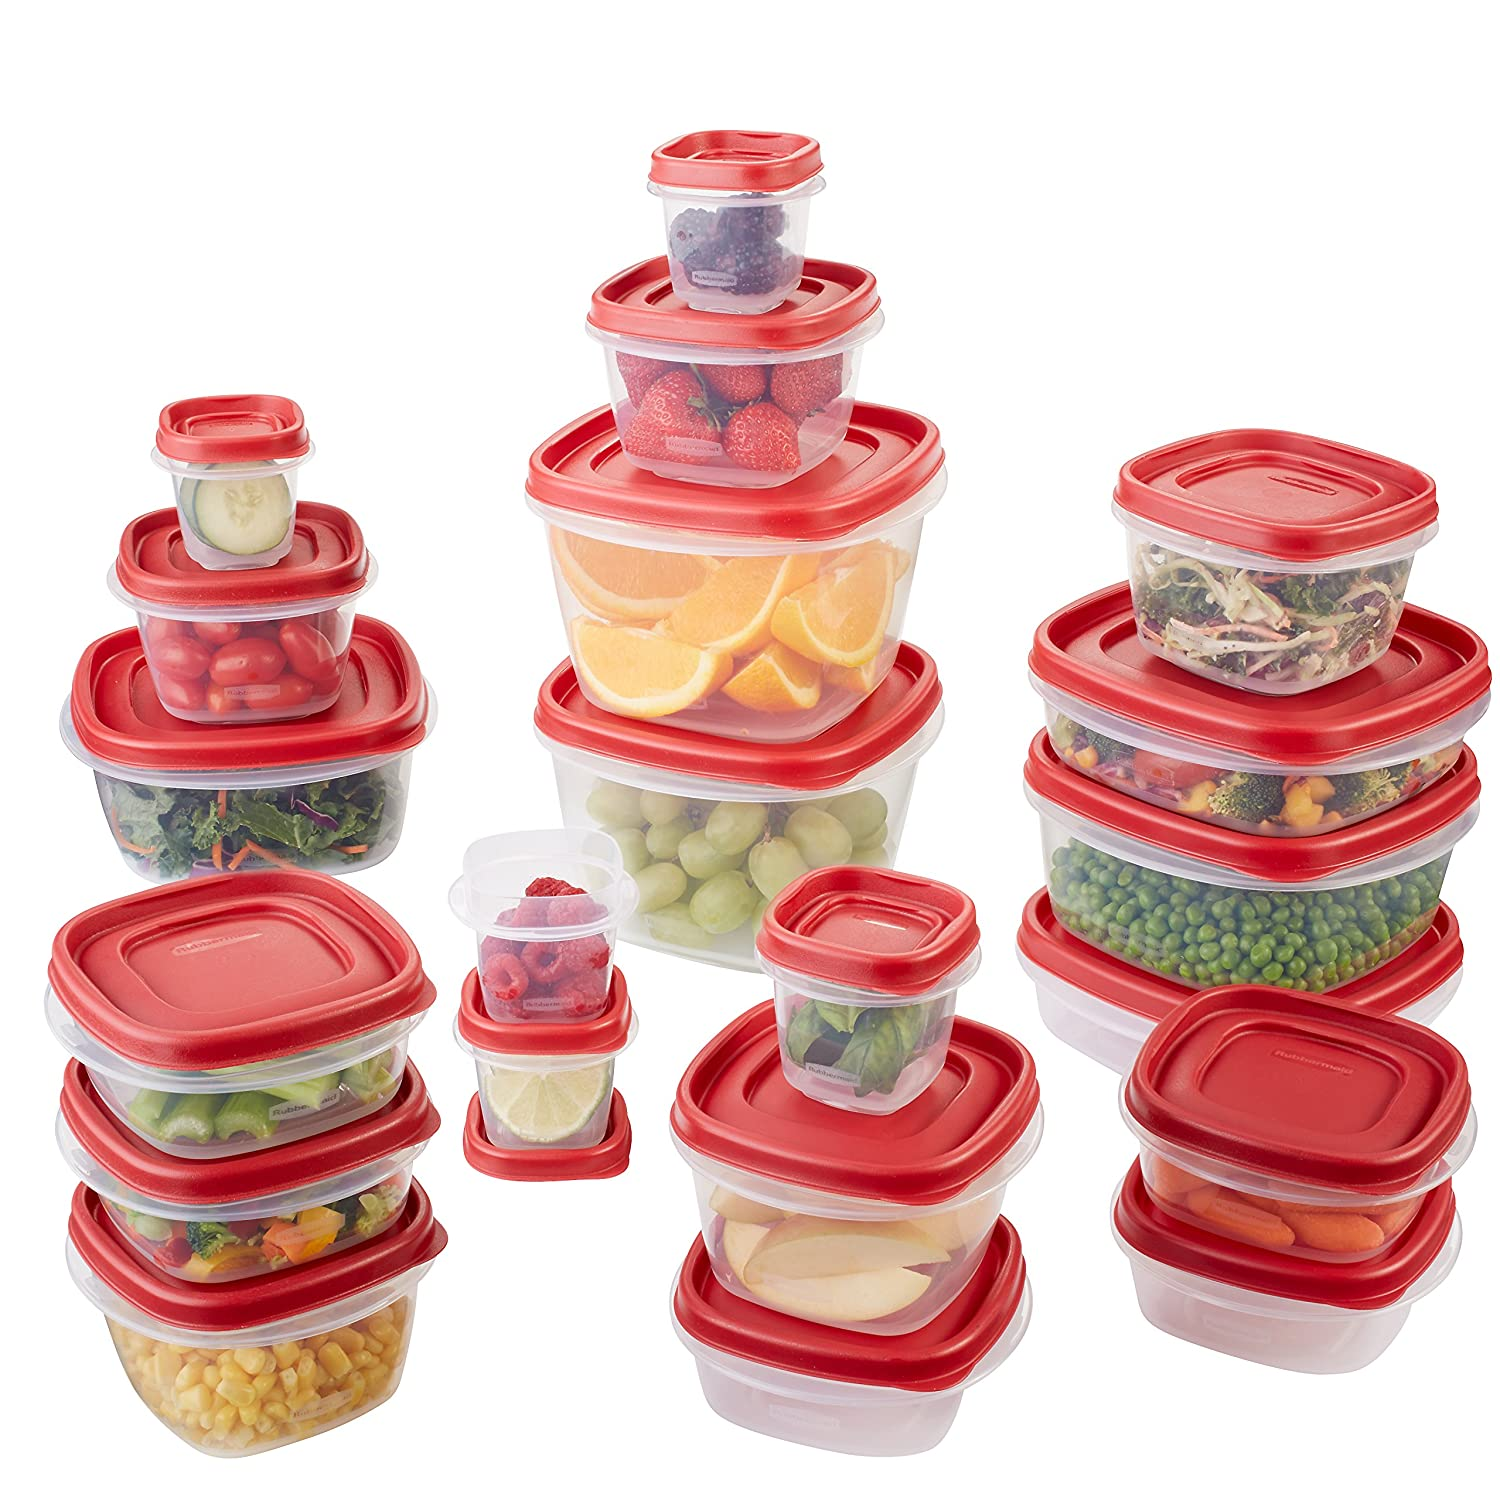 42 piece Rubbermaid Easy Find lids Food Storage Container Set